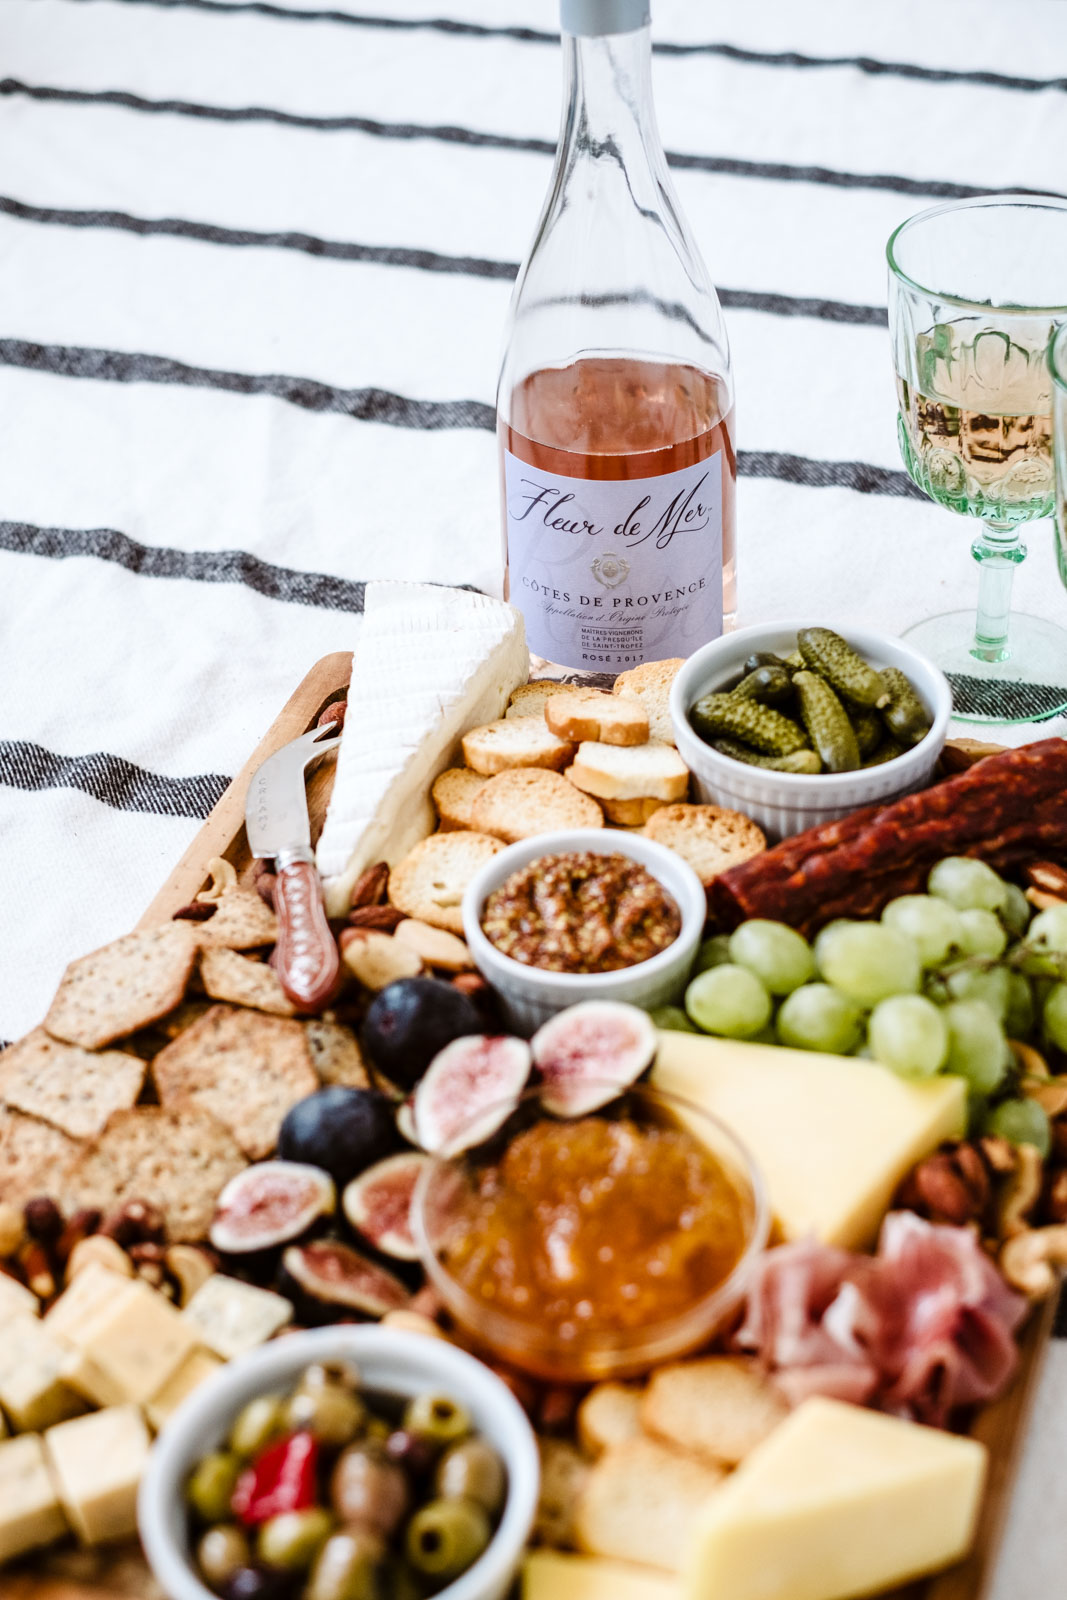 How to make a charcuterie board two different ways! These easy, beautiful charcuterie boards have a meat & cheese focus and a vegan option, and are perfect for the holidays. With a few quick tips and tools you can easily customize them!